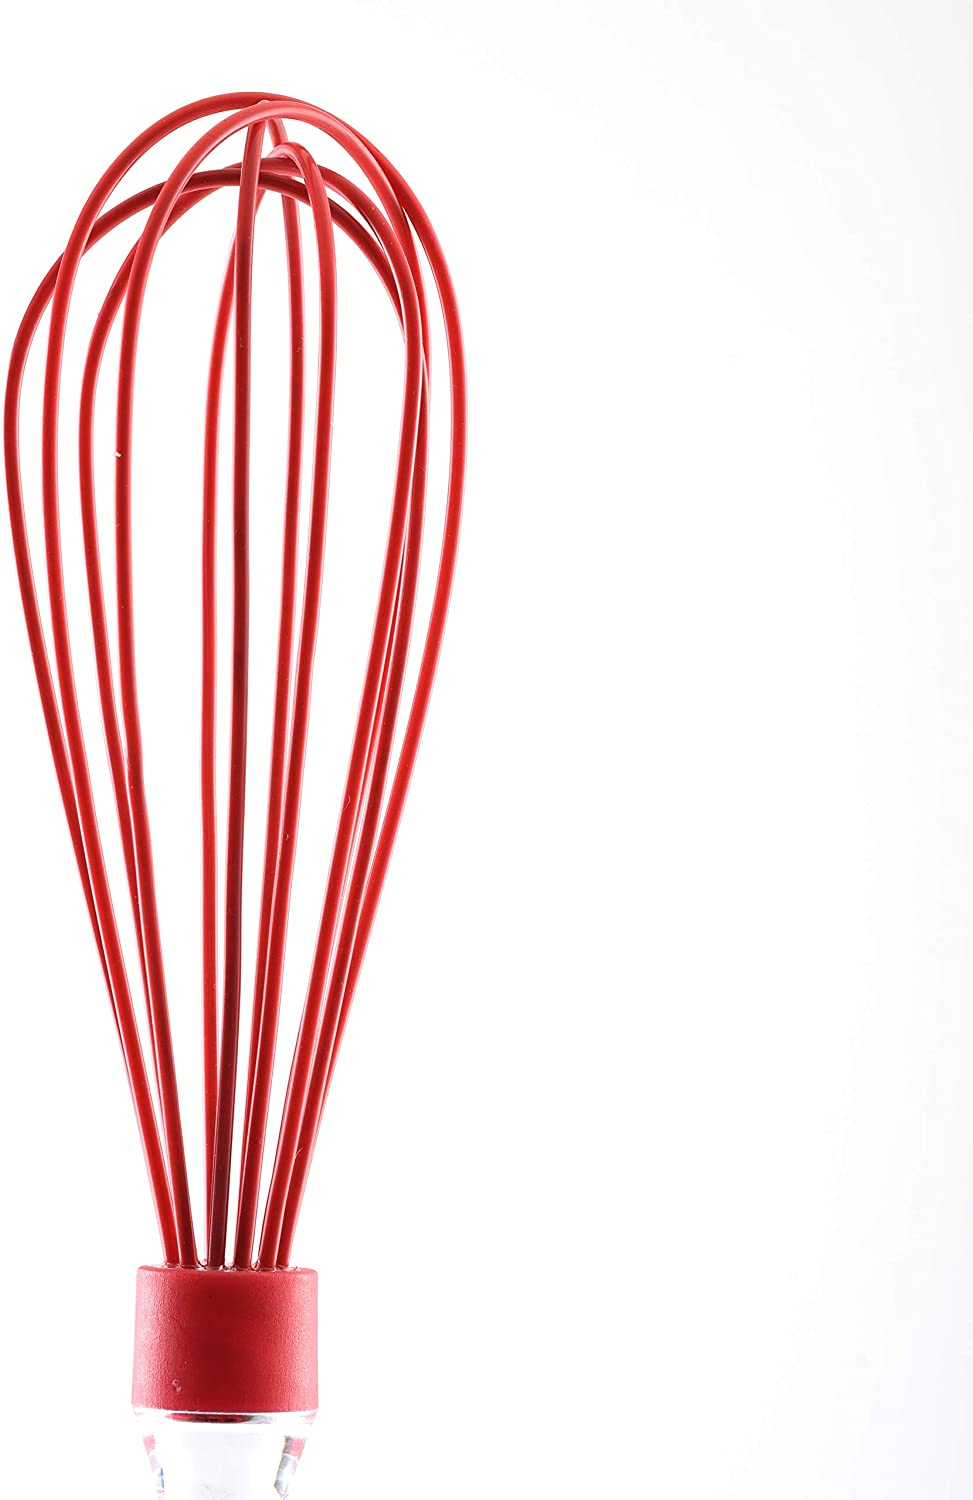 Norpro Silicone Whisk-Red